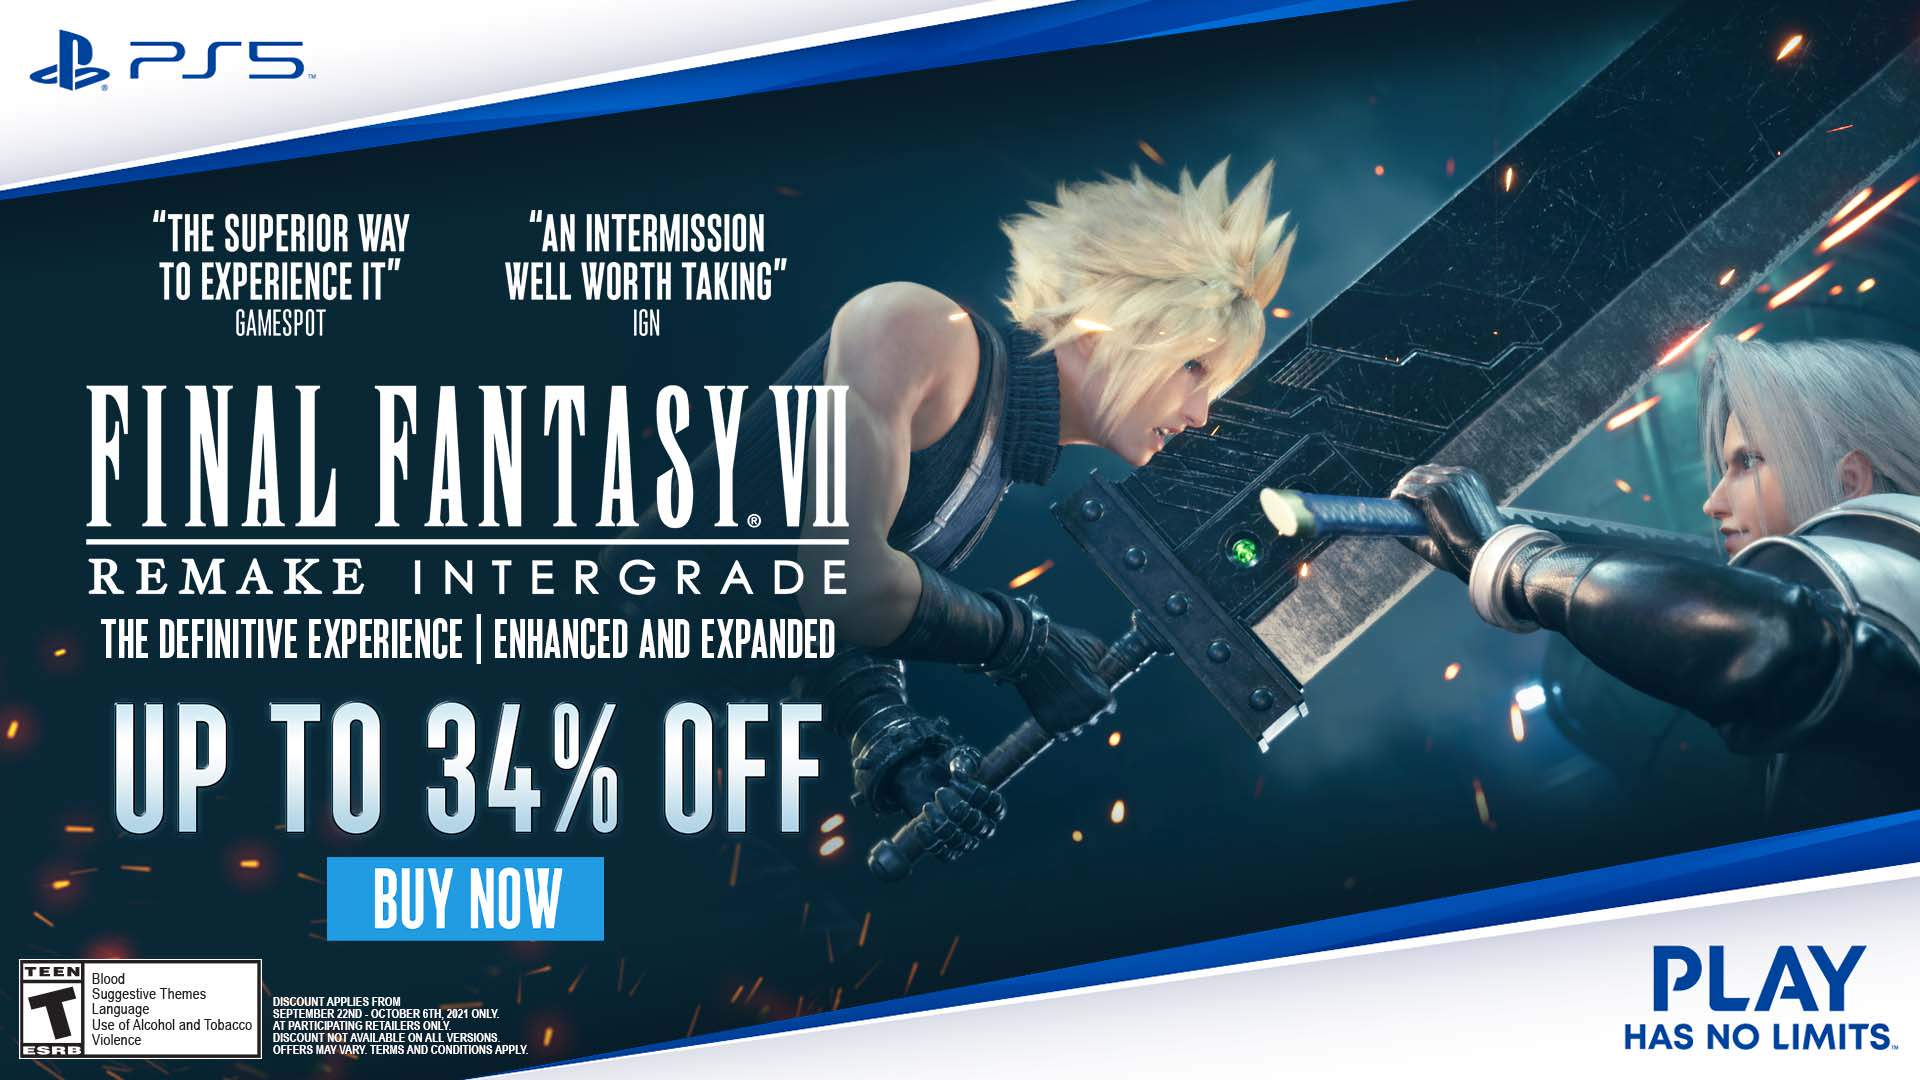 Cloud and Sephiroth clashing swords. FF7 REMAKE INTERGRADE LIMITED TIME ONLY - UP TO 34% OFF*